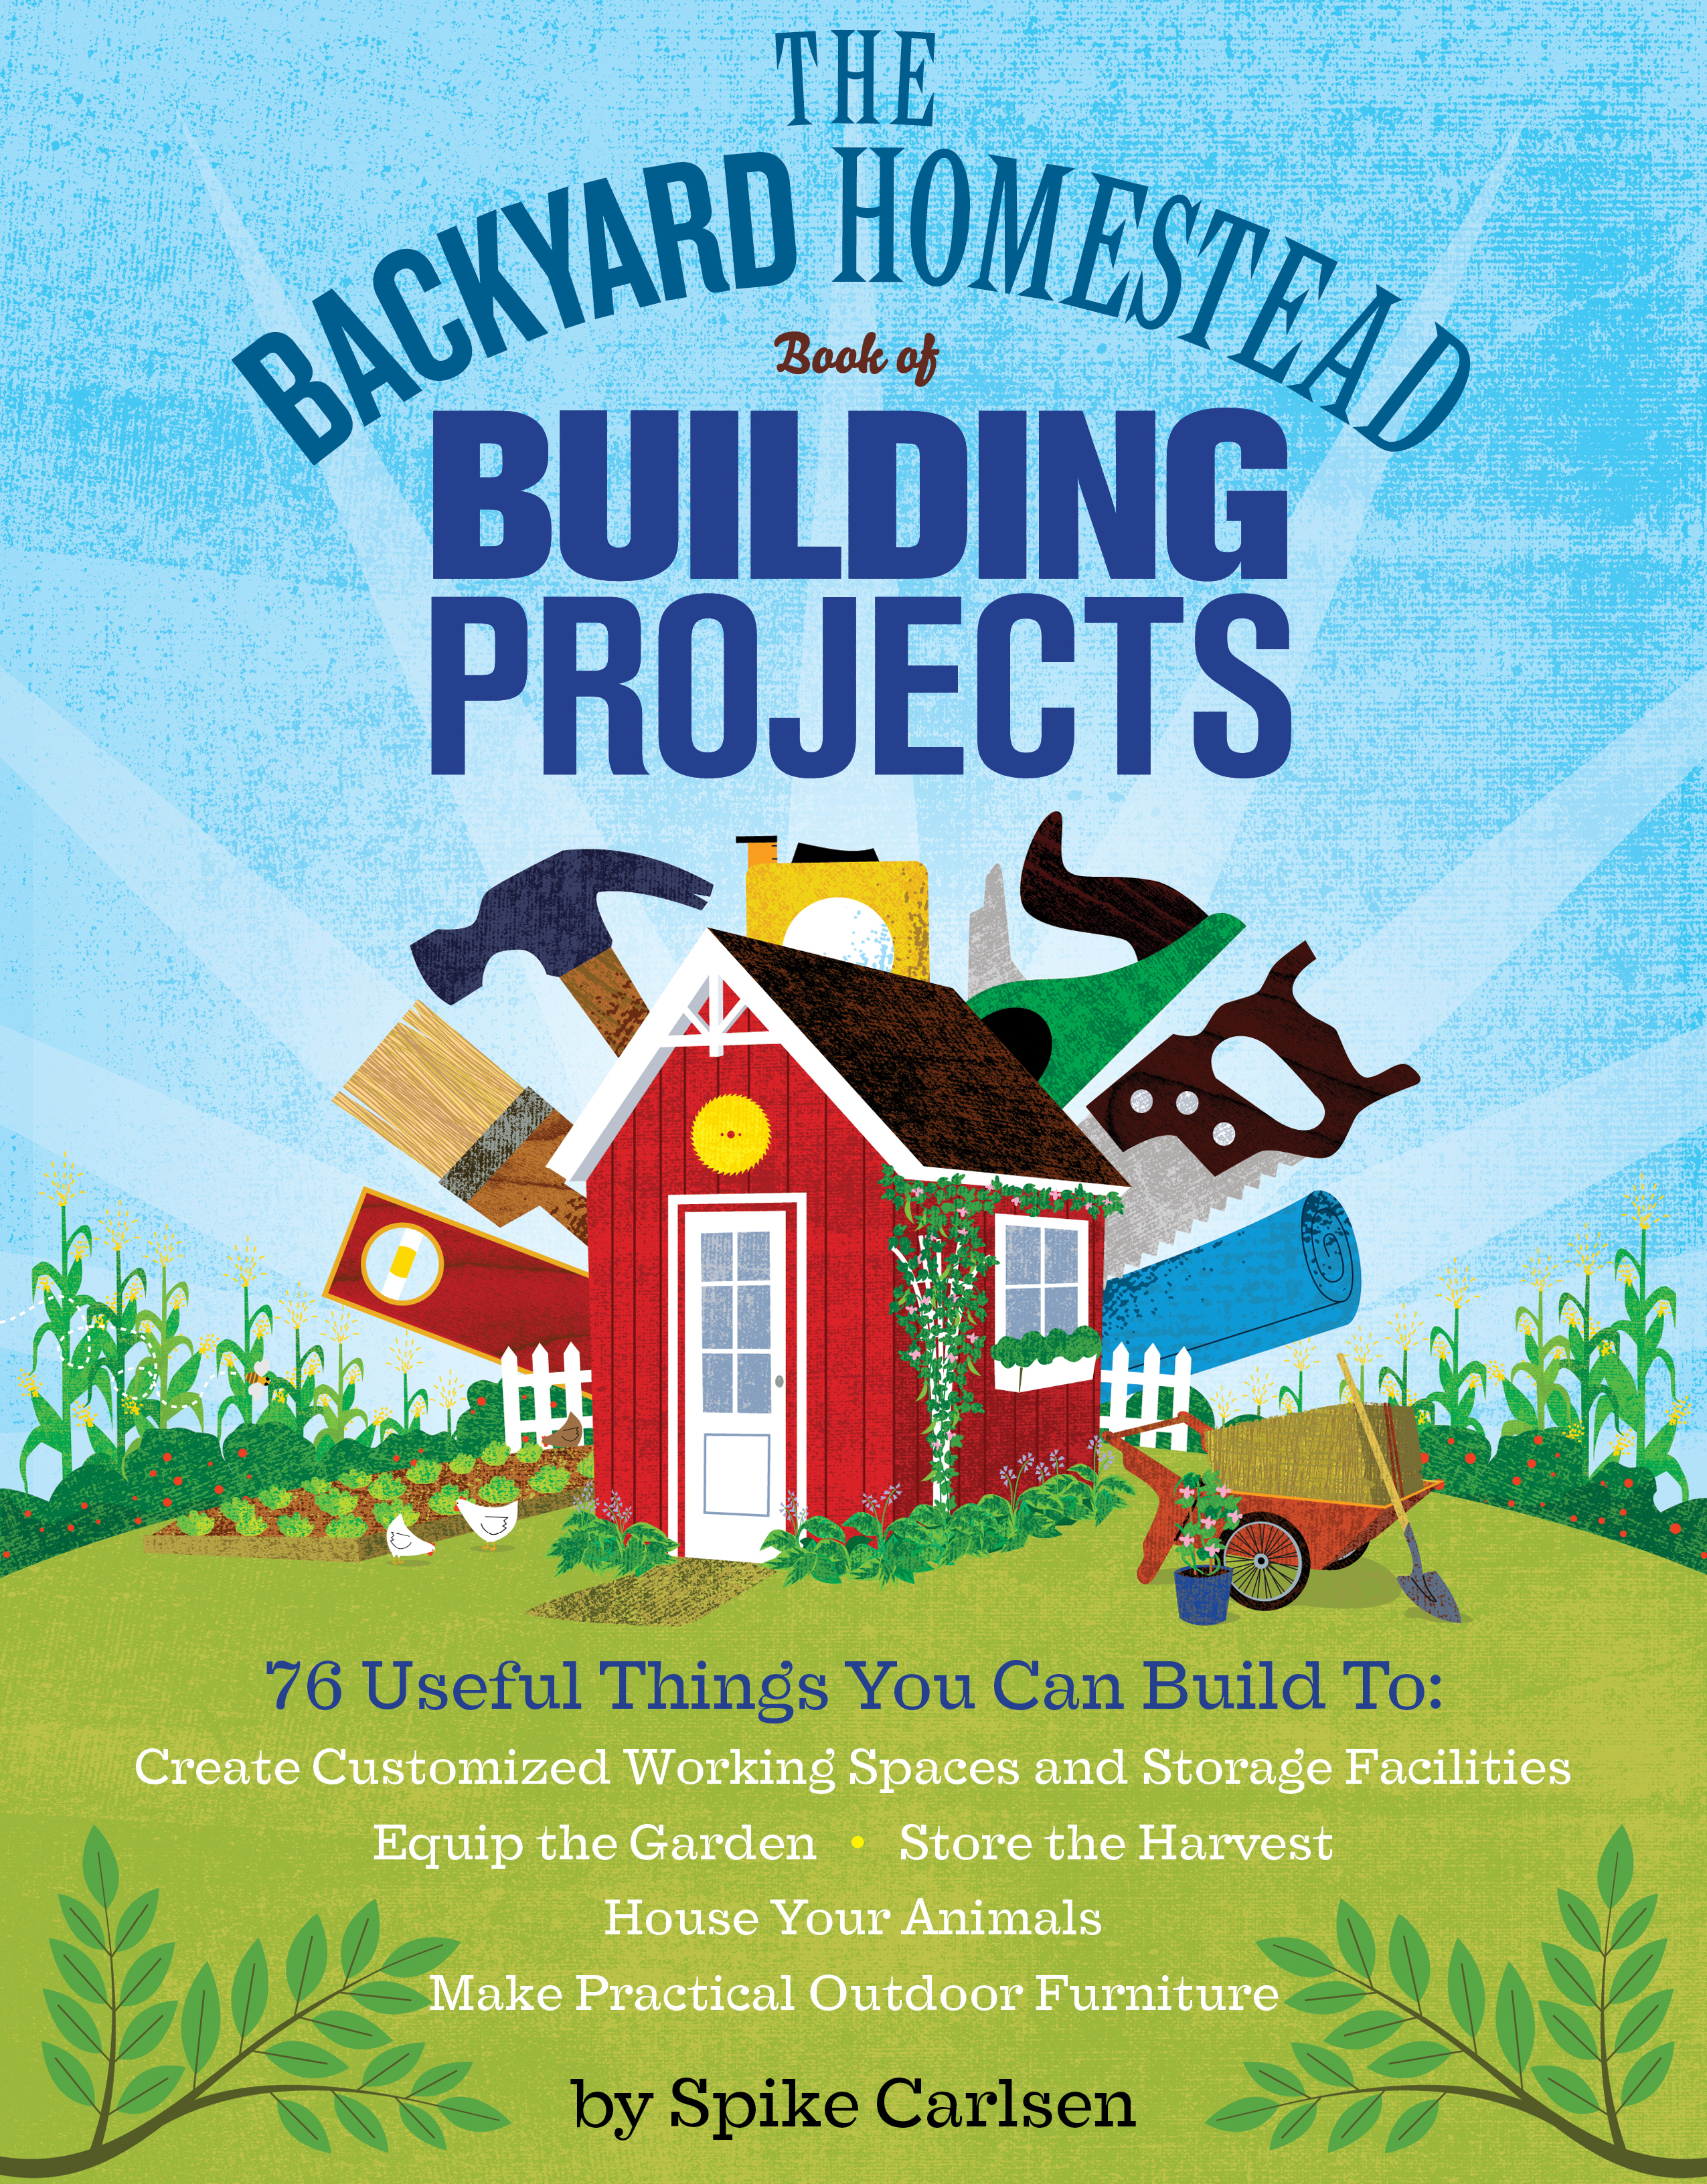 The Backyard Homestead Book of Building Projects 76 Useful Things You Can Build to Create Customized Working Spaces and Storage Facilities, Equip the Garden, Store the Harvest, House Your Animals, and Make Practical Outdoor Furniture